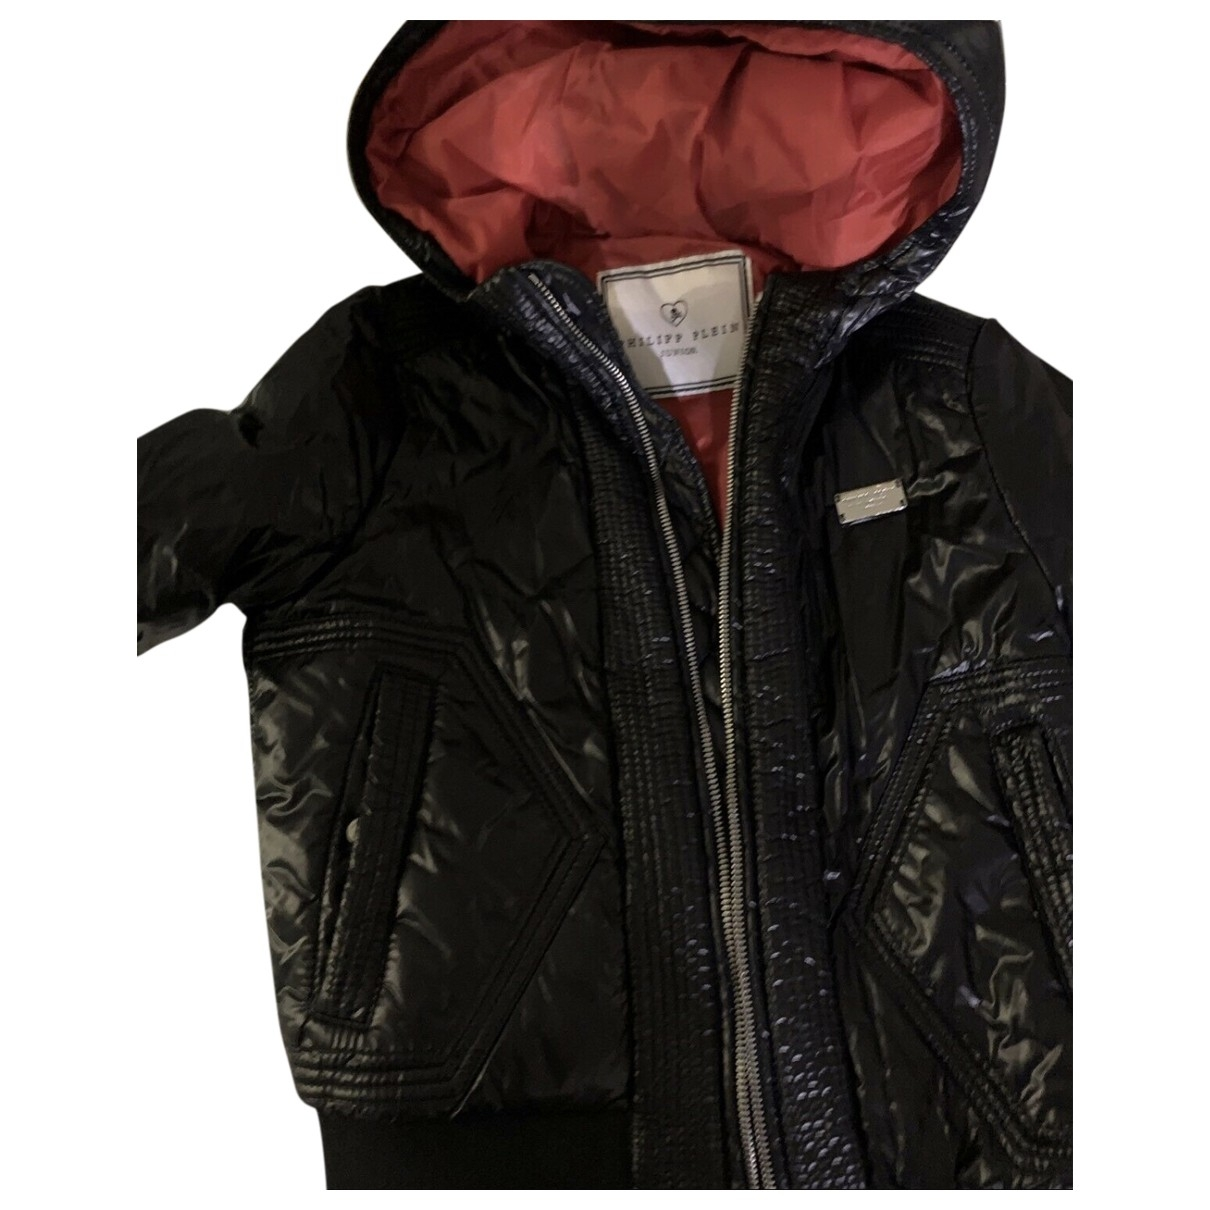 Philipp Plein \N Black jacket & coat for Kids 6 years - up to 114cm FR